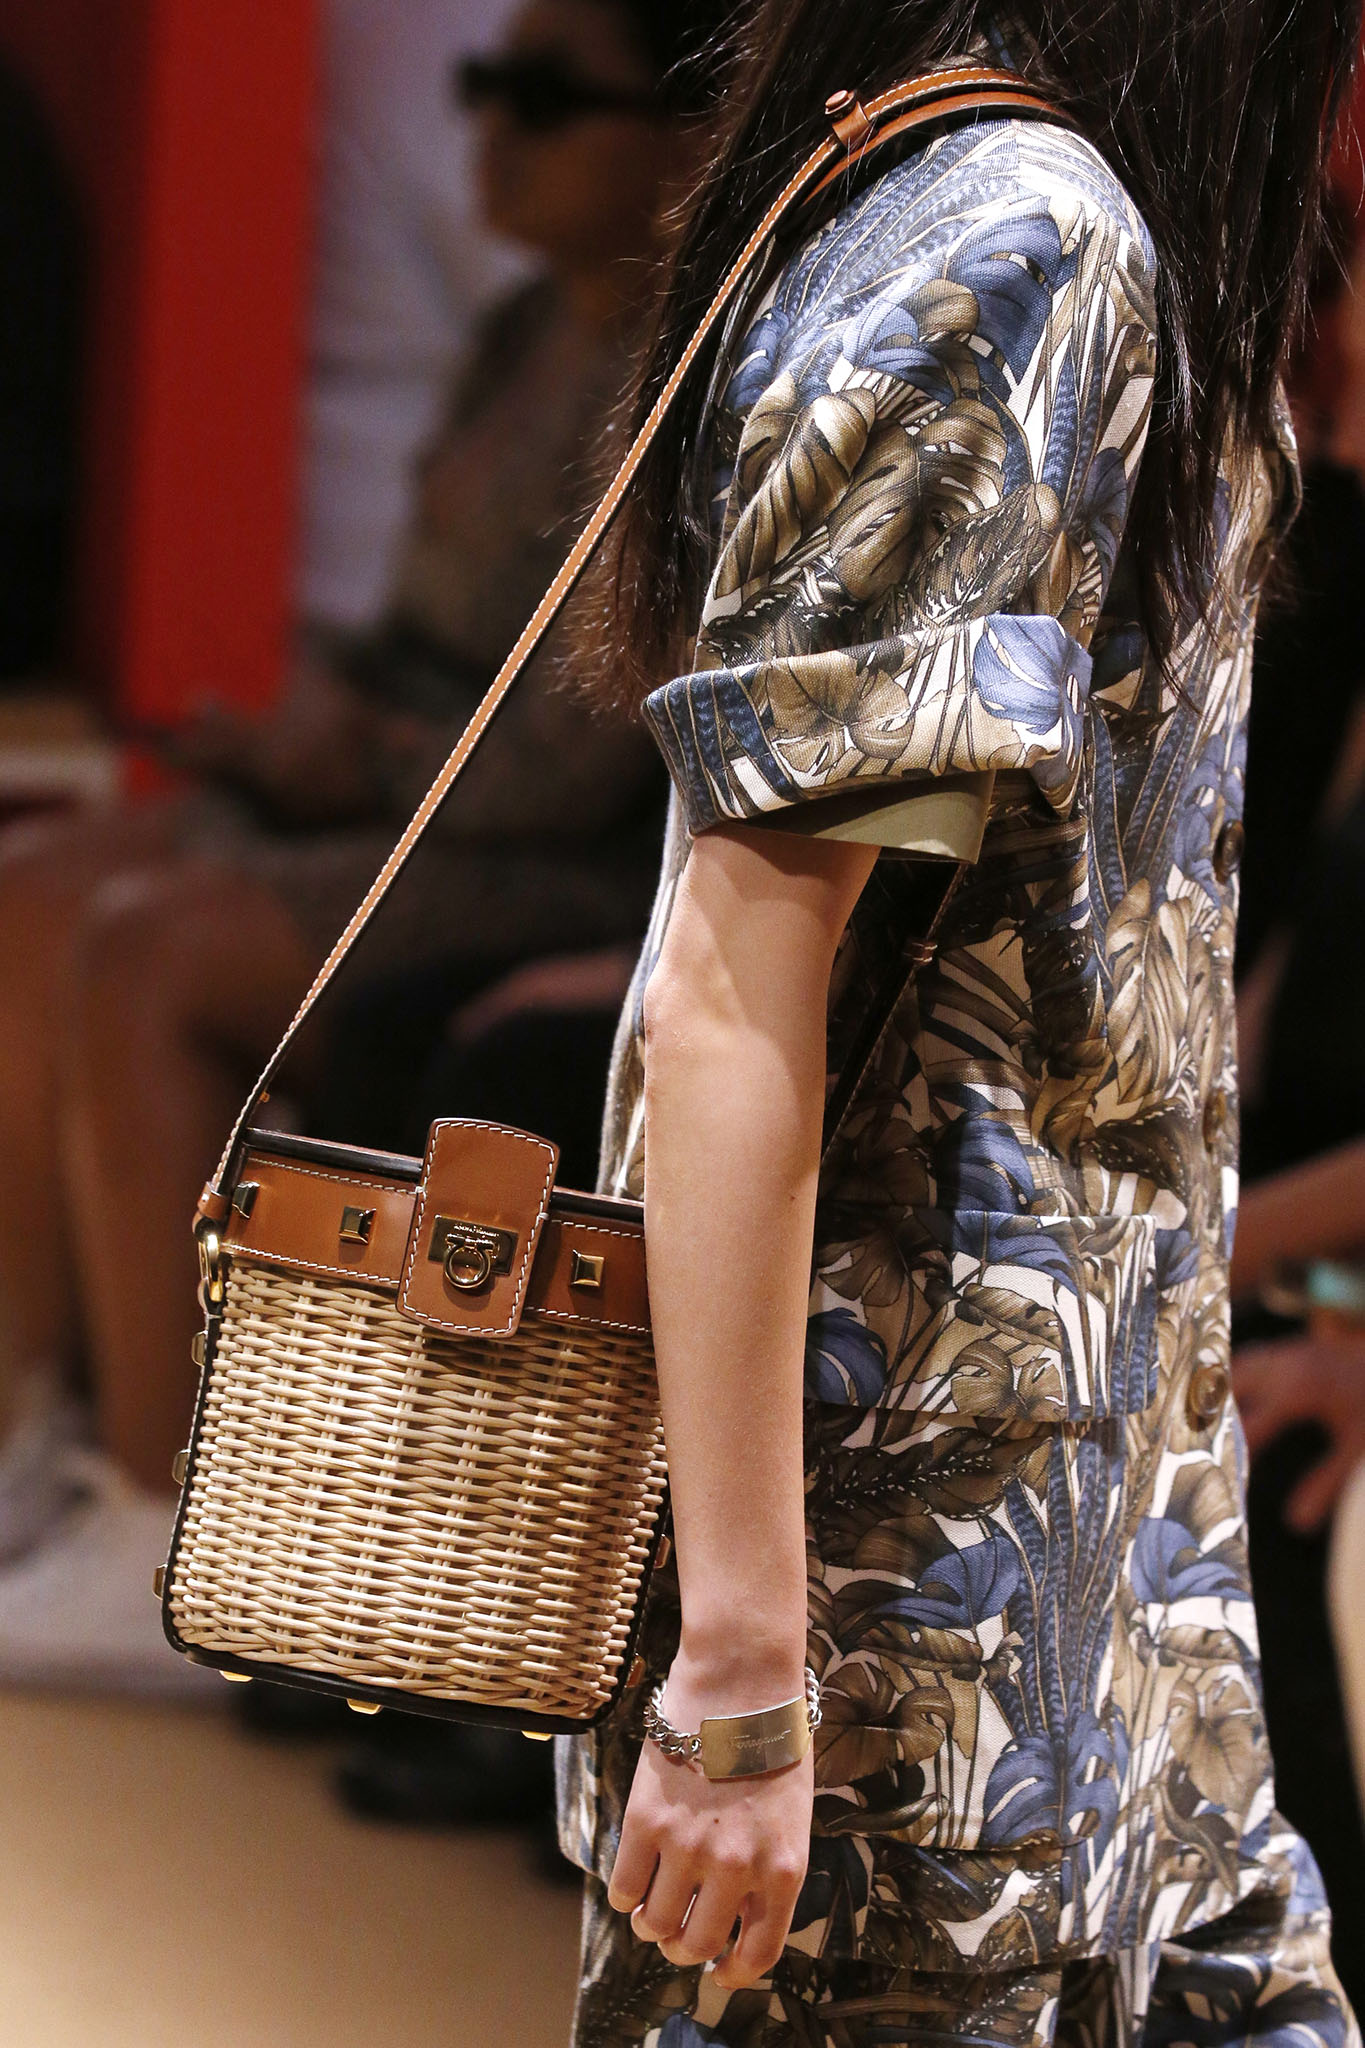 Salvatore Ferragamo women's creative director Paul Andrew updated the classic straw bucket bag with sophisticated leather inserts, metallic studs and the brand's signature Gancini detail. Charming as a Mediterranean summer.